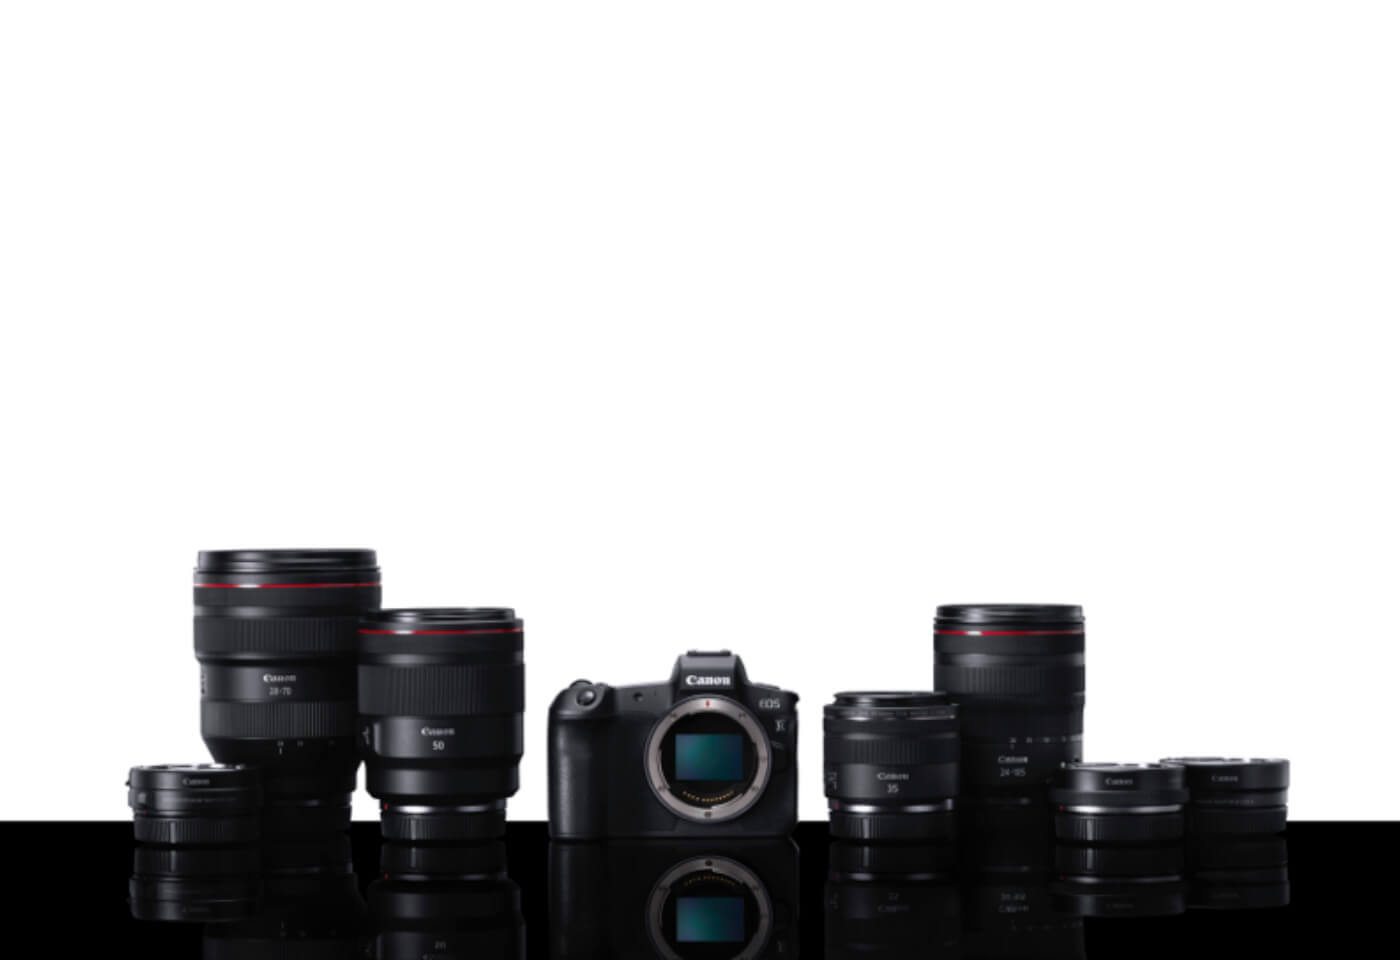 Product image of Canon EOS R and lenses